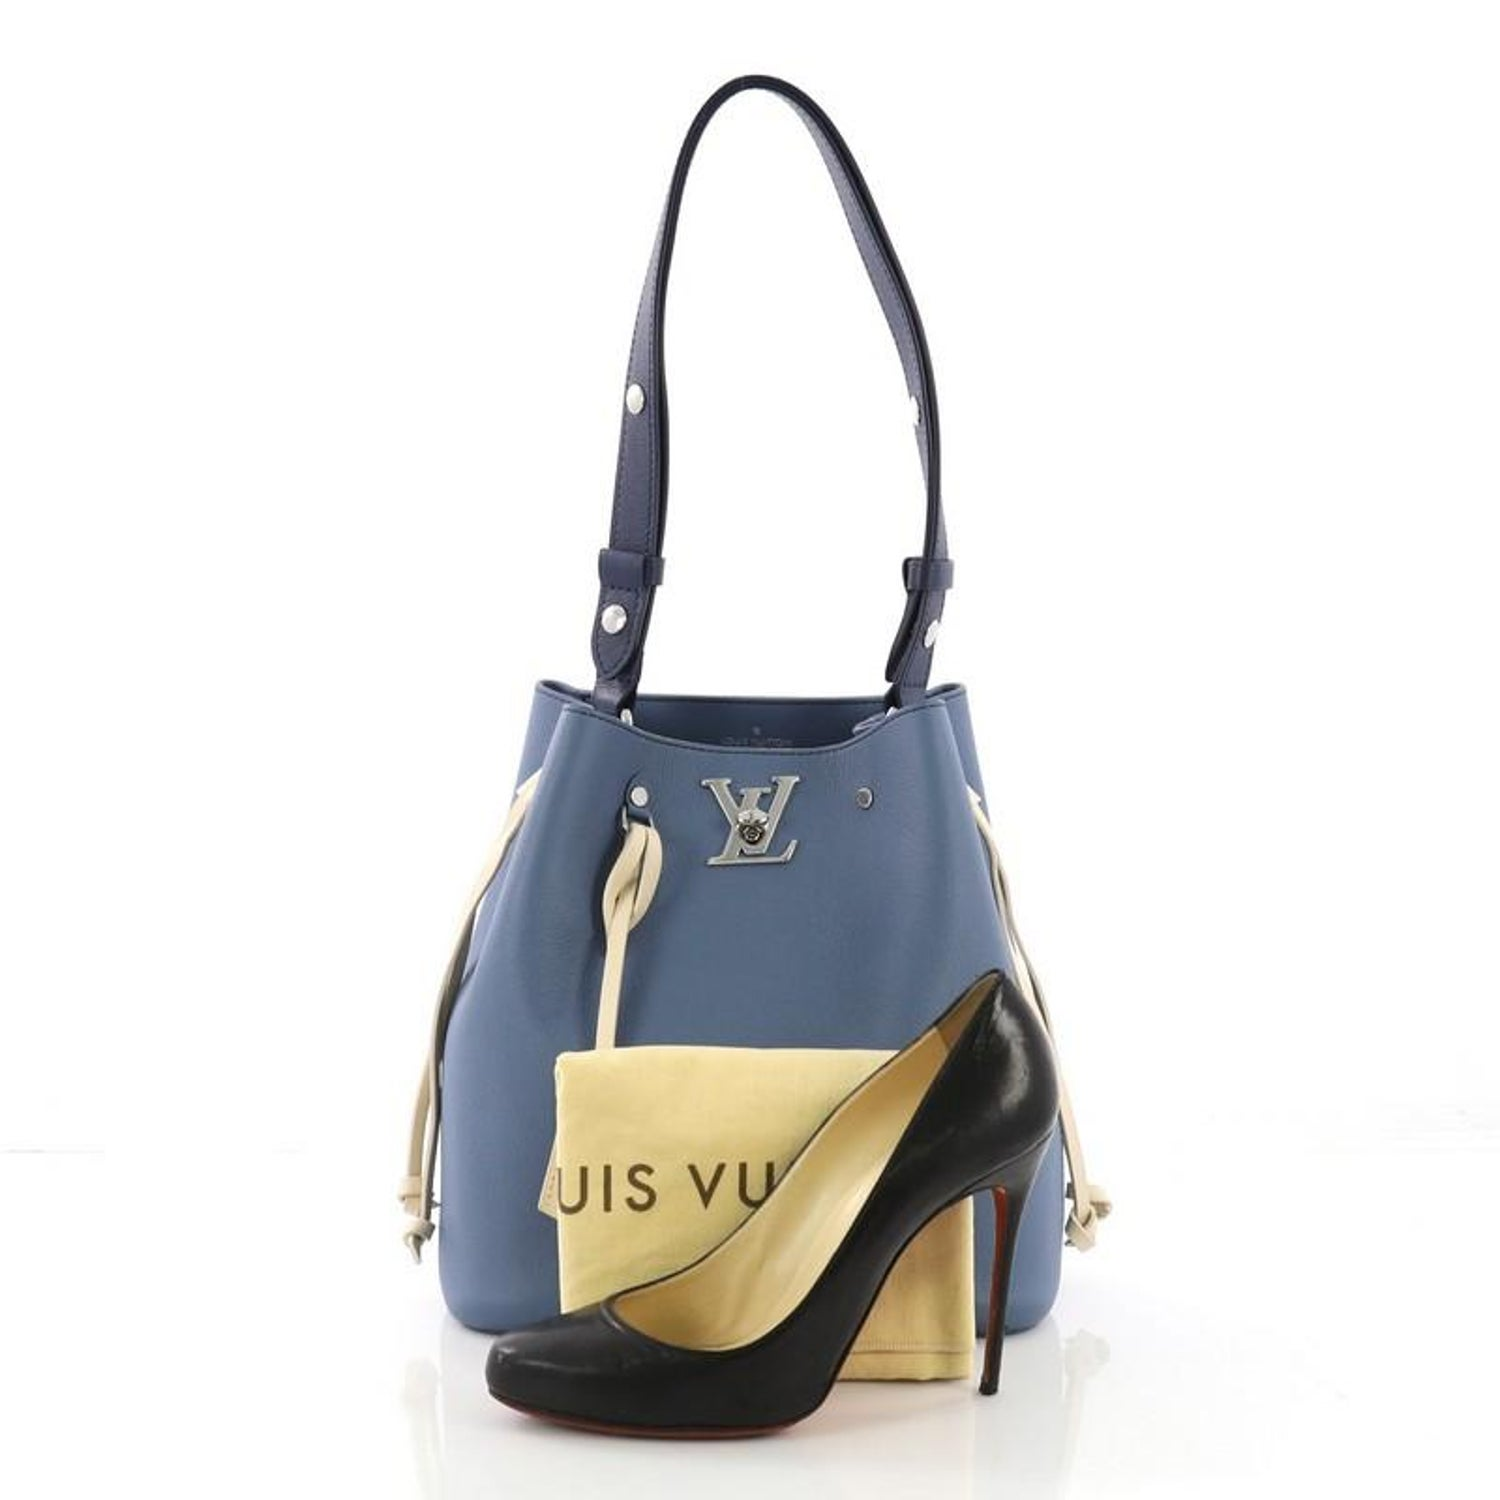 33dc51255 Louis Vuitton Lockme Bucket Bag Leather at 1stdibs